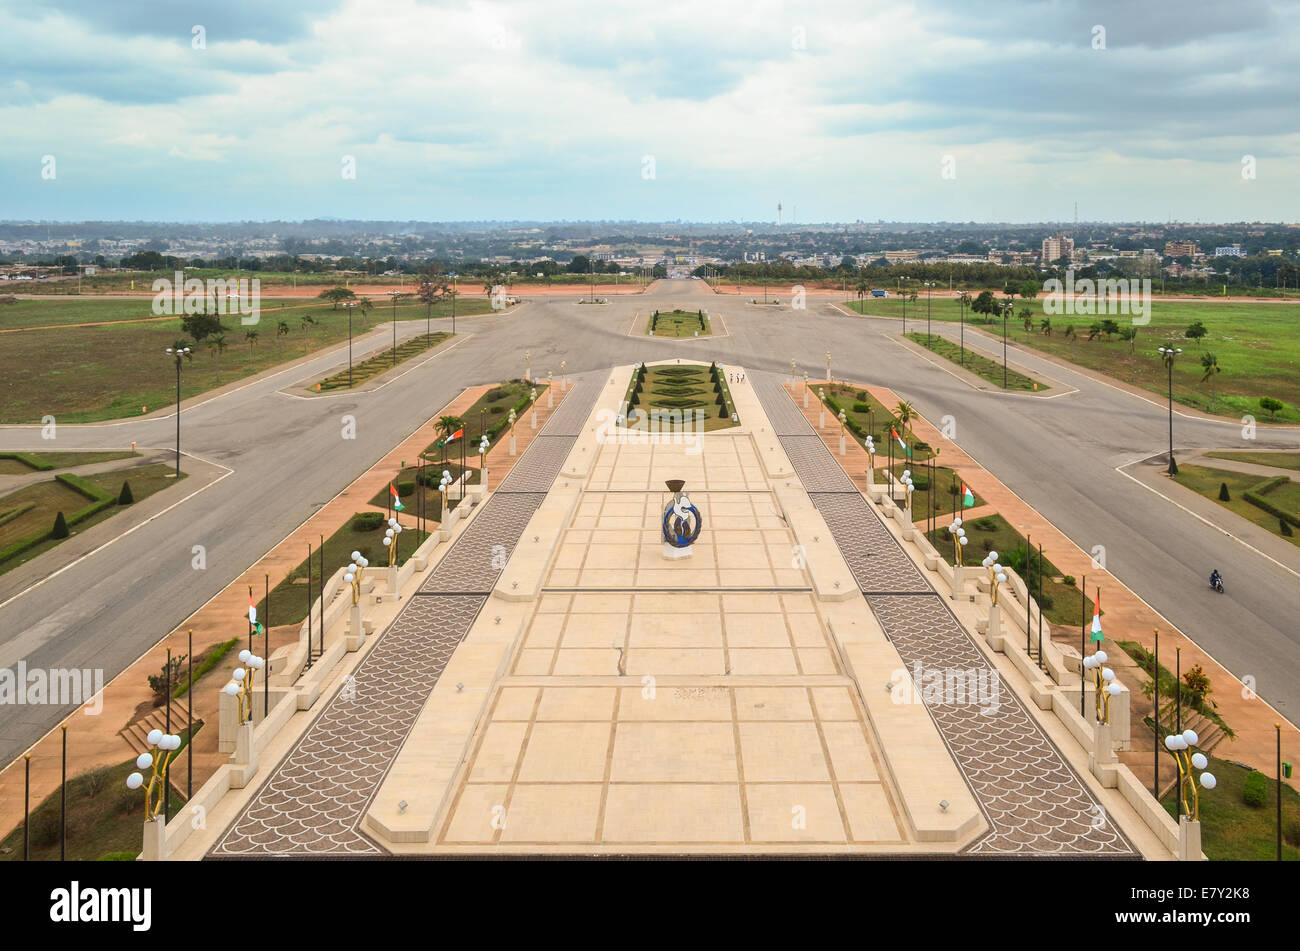 View of Yamoussoukro, Côte d'Ivoire (Ivory Coast), from the Fondation Félix Houphouet-Boigny - Stock Image